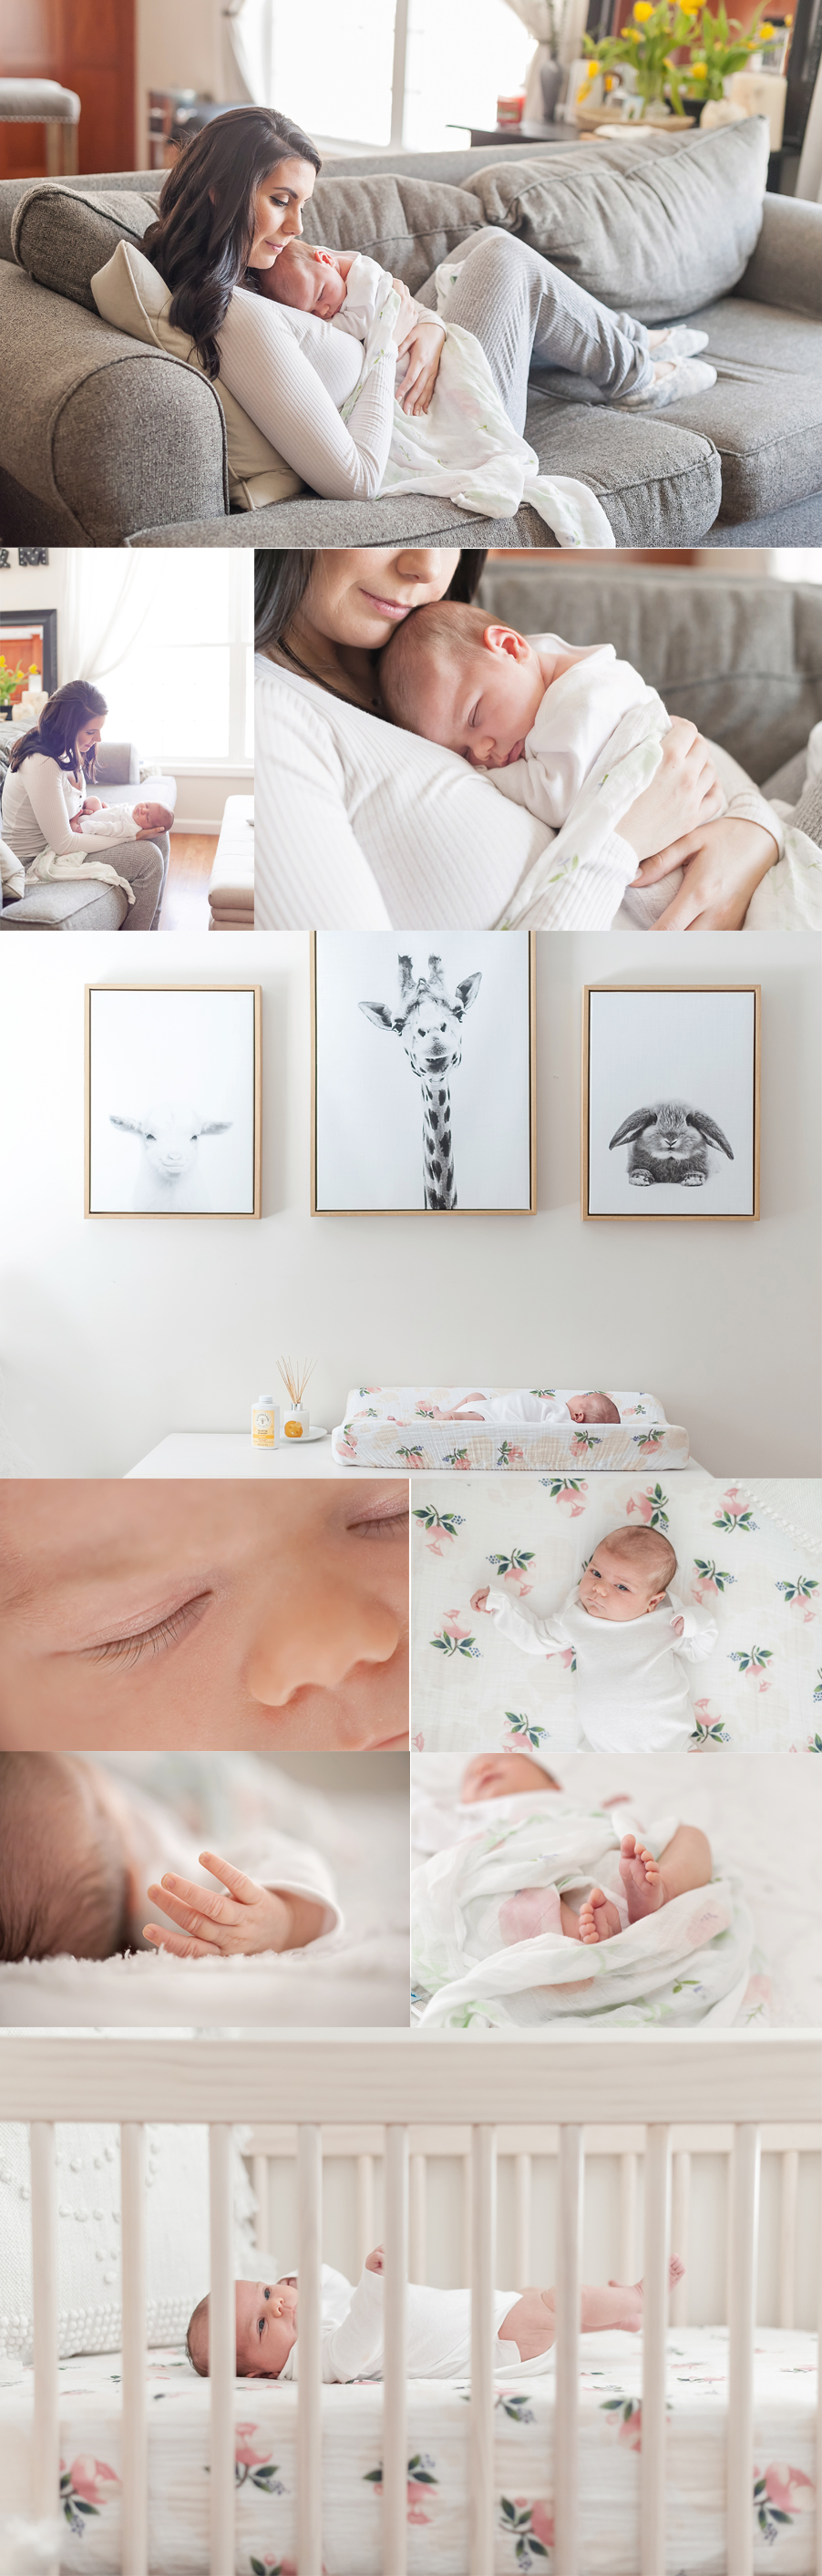 massachusetts at home lifestyle newborn photography